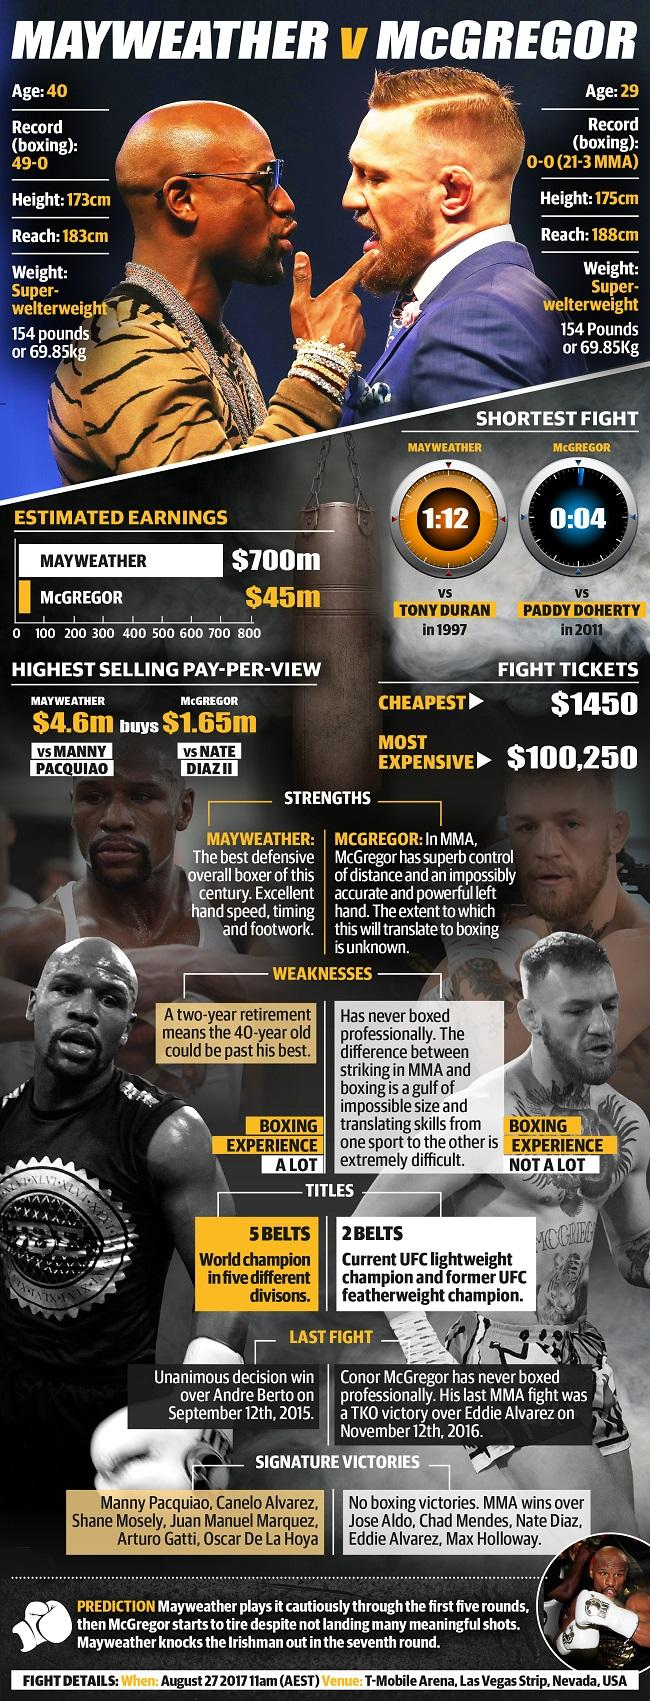 Mayweather v McGregor: the mega-fight by the numbers